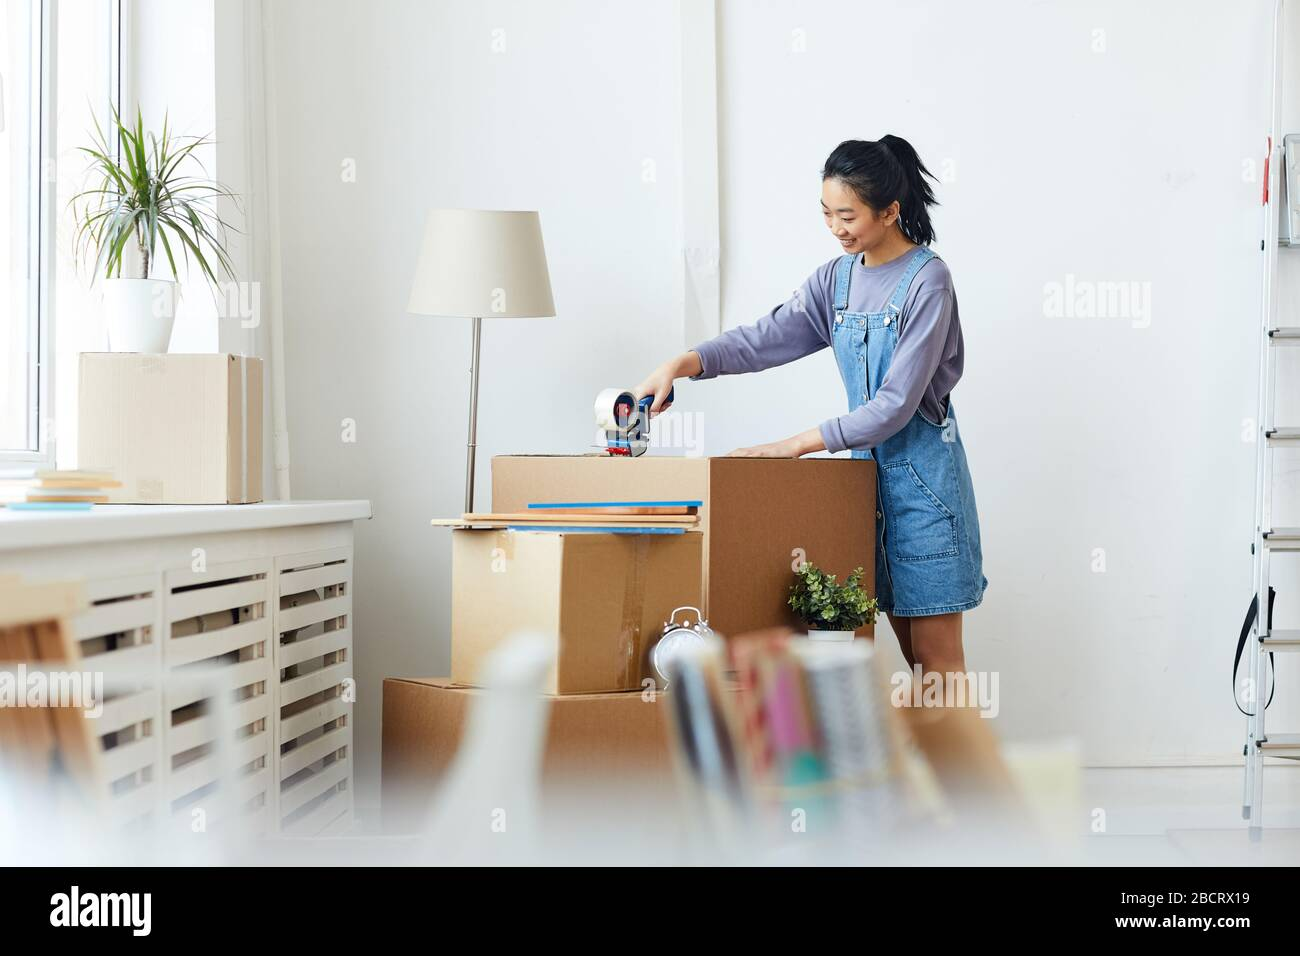 Side view portrait of young Asian woman packing cardboard boxes and smiling happily while moving to new home or apartment, copy space Stock Photo